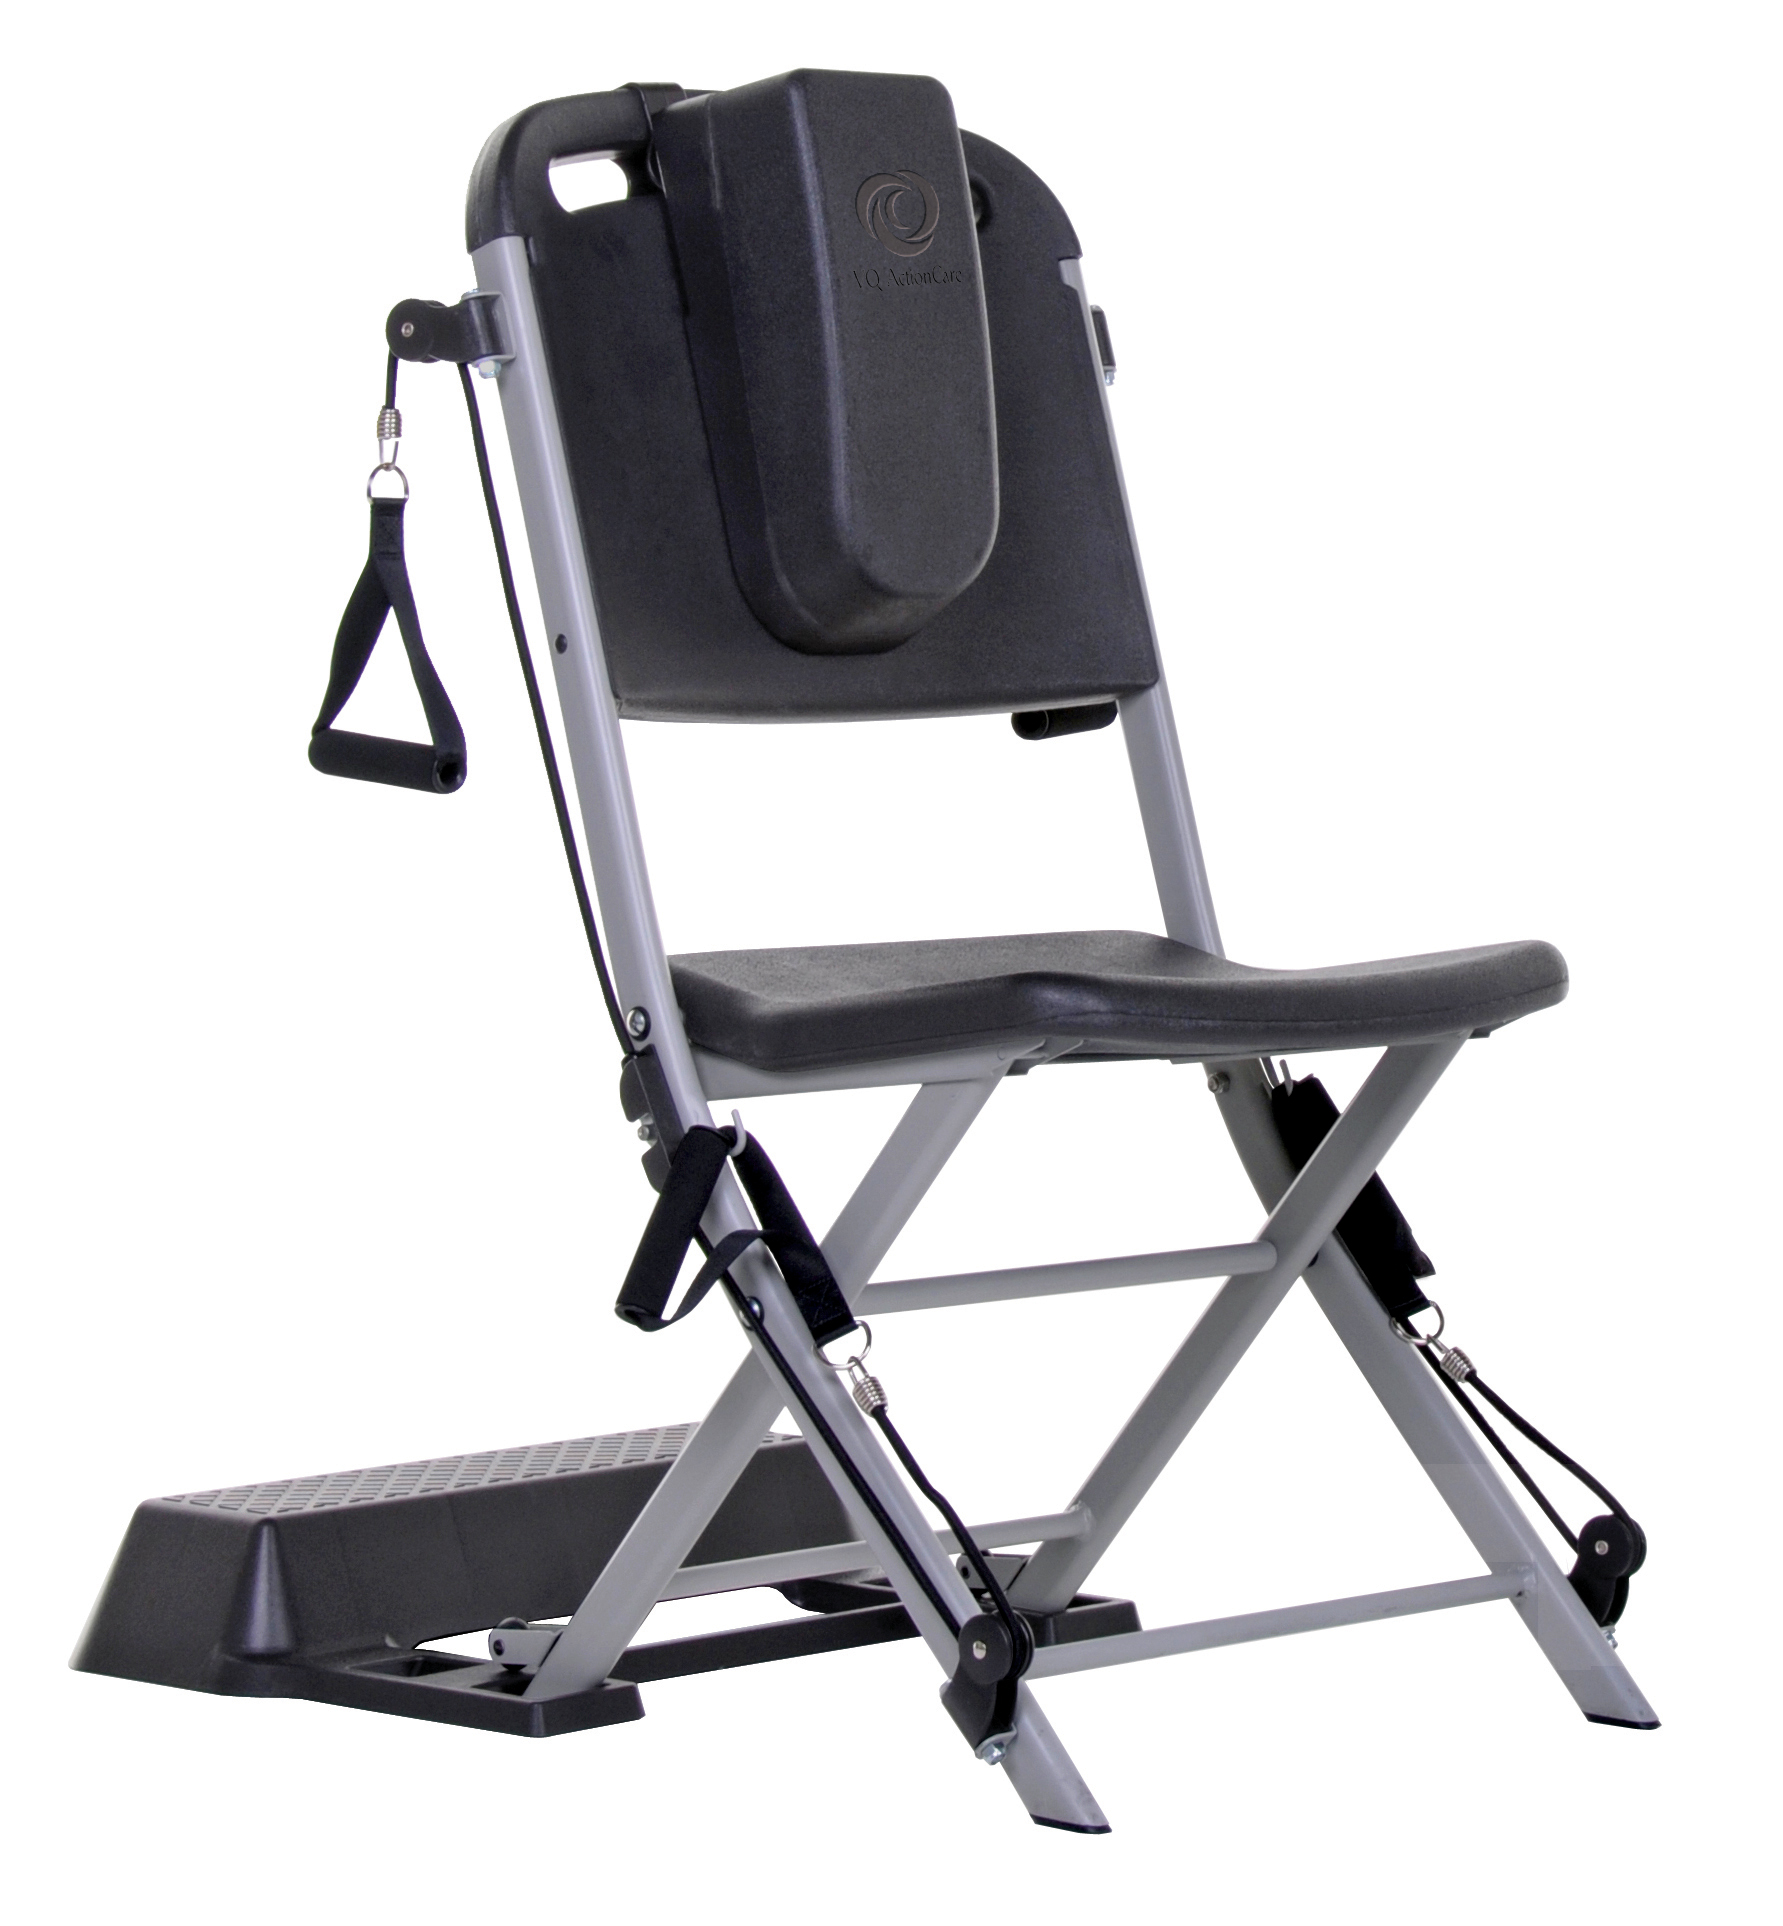 The Resistance Chair Introduction Into Innovation